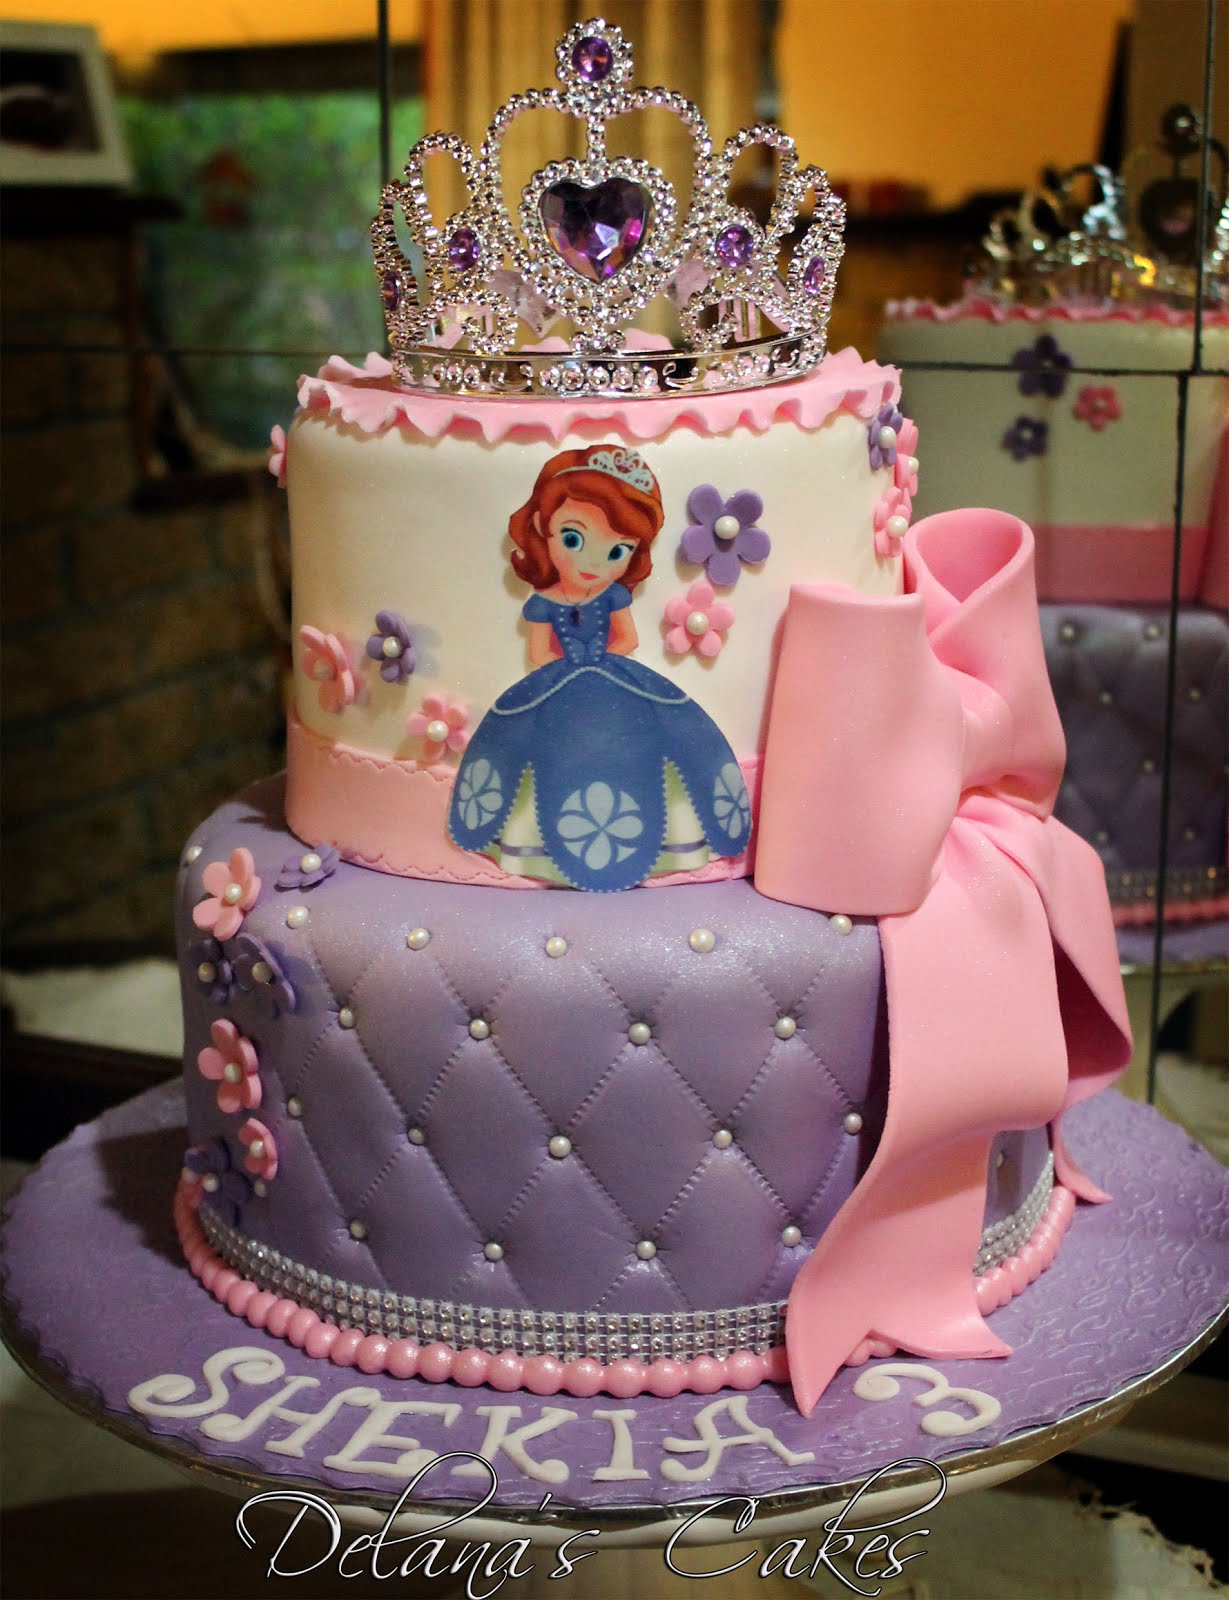 Cake Images Of Sofia The First : Delana s Cakes: Sofia the first Cake